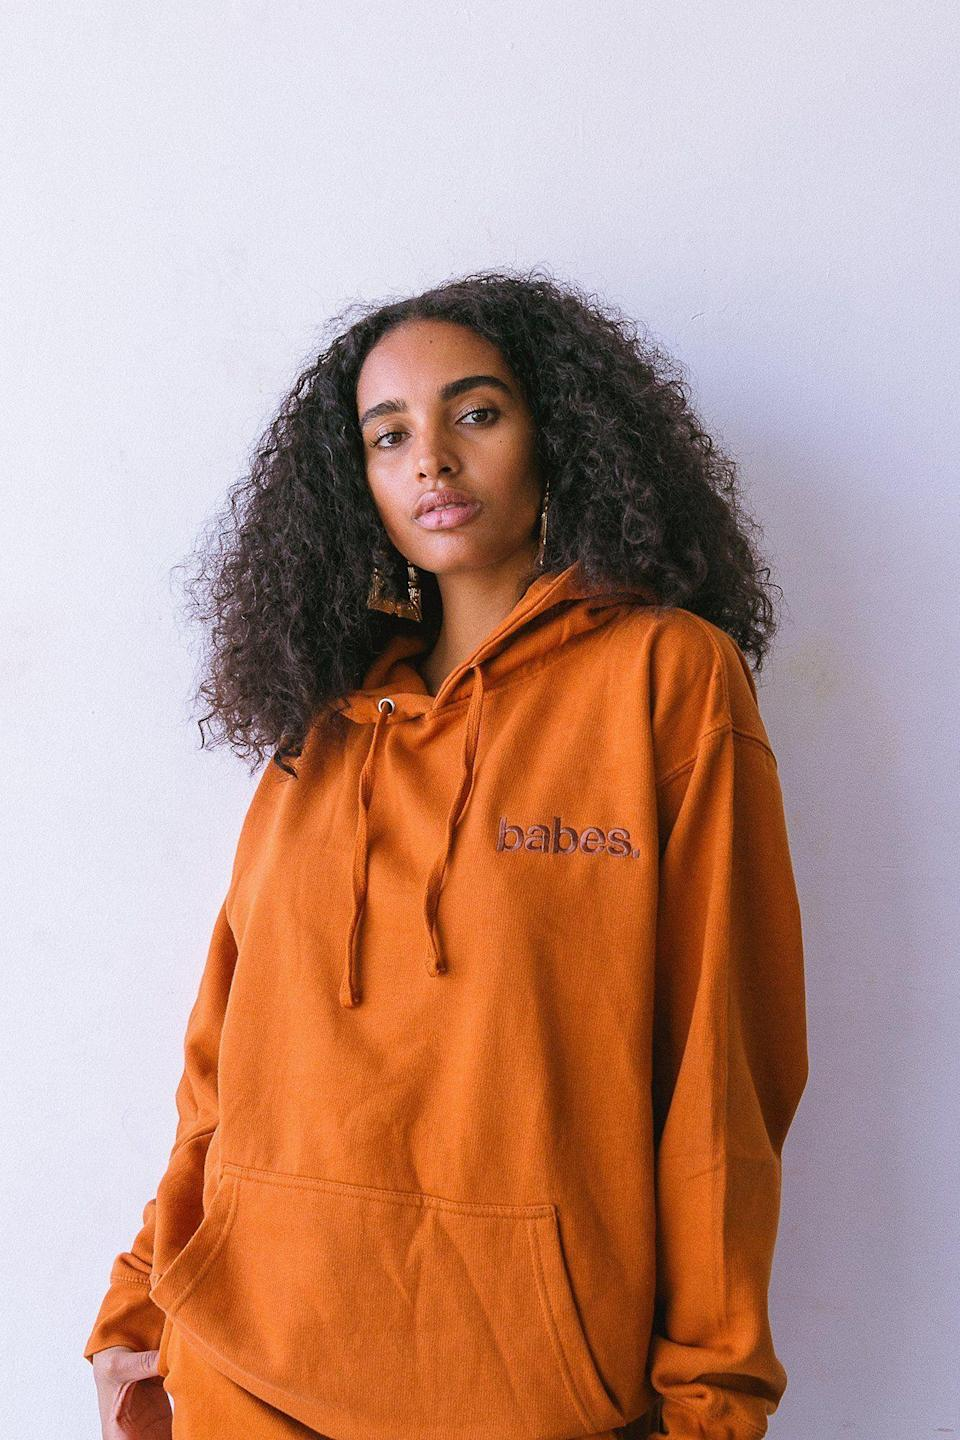 "<p><strong>Babes.</strong></p><p>shopbabes.com</p><p><strong>$45.00</strong></p><p><a href=""https://shopbabes.com/collections/joggers/products/babes-comfy-hoodie-rust"" rel=""nofollow noopener"" target=""_blank"" data-ylk=""slk:Shop Now"" class=""link rapid-noclick-resp"">Shop Now</a></p><p>If the brand name is any indication, you'll be a true babe in this perfectly baggy sweatshirt. </p>"